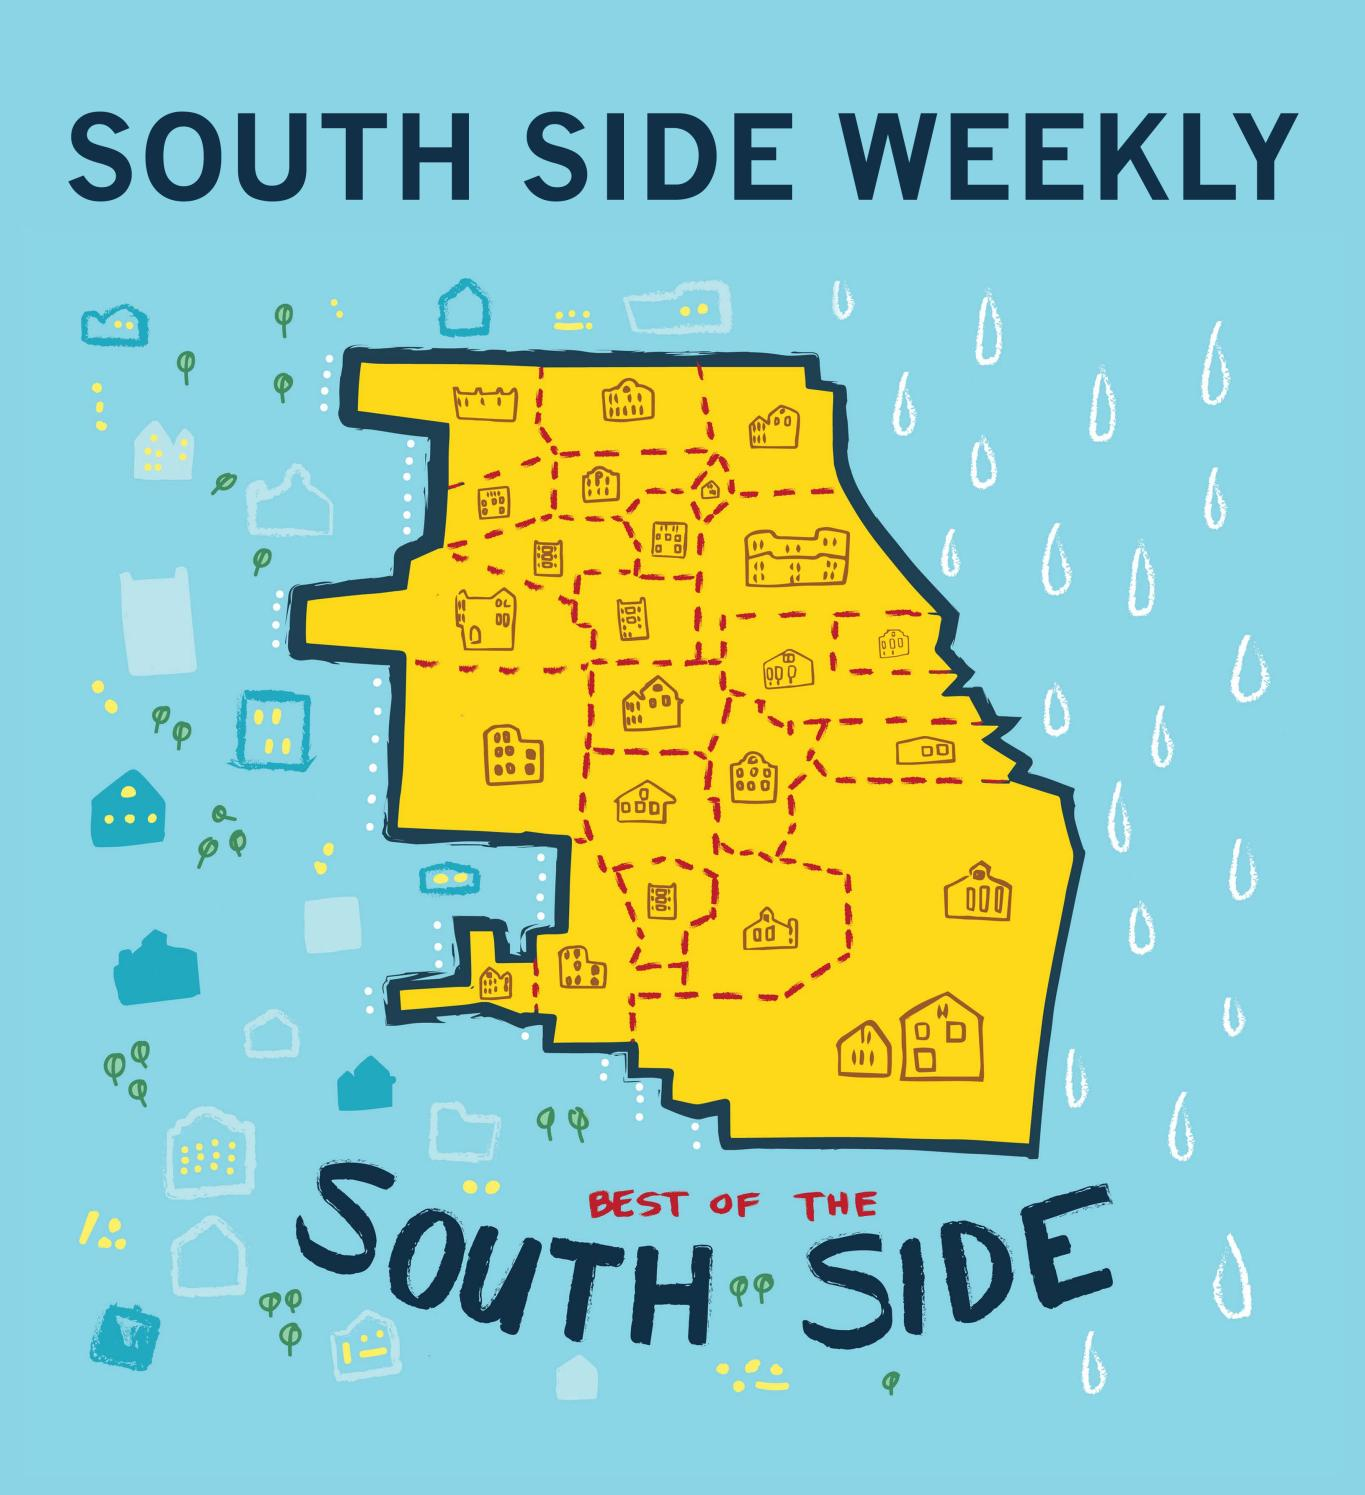 Best of the South Side 2016 by South Side Weekly issuu